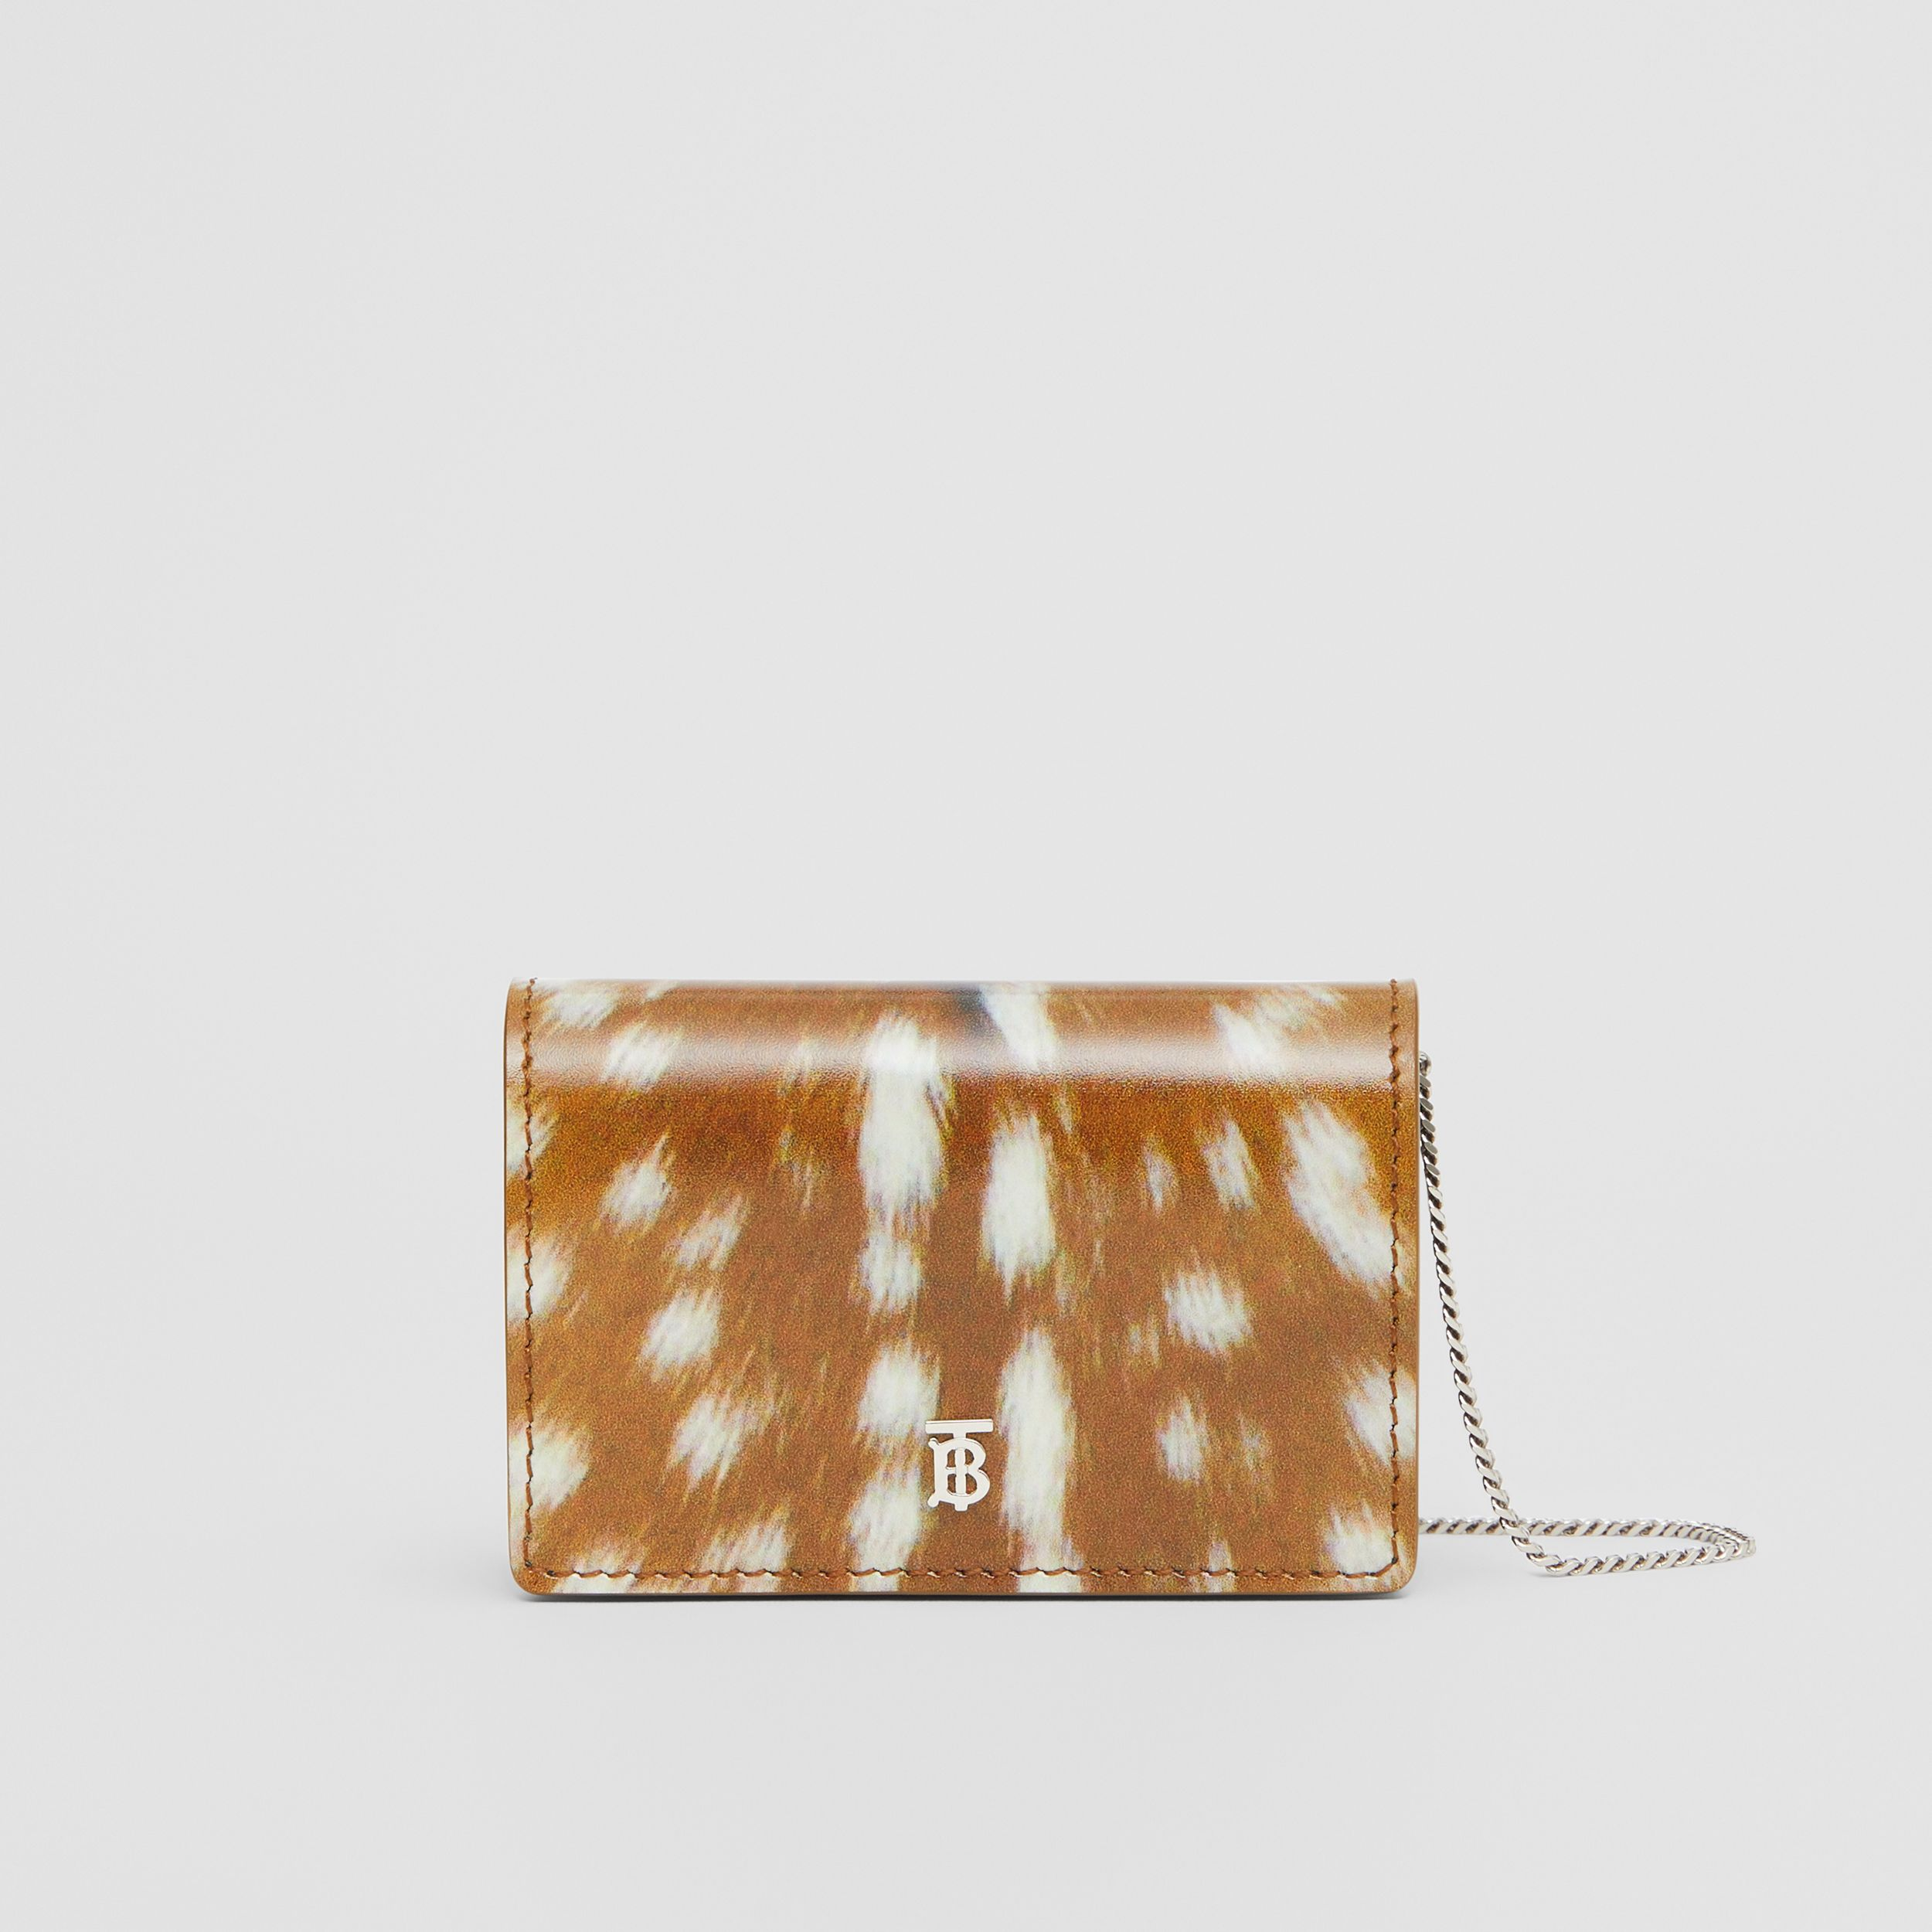 Deer Print Leather Card Case with Detachable Strap in Malt Brown - Women | Burberry - 1